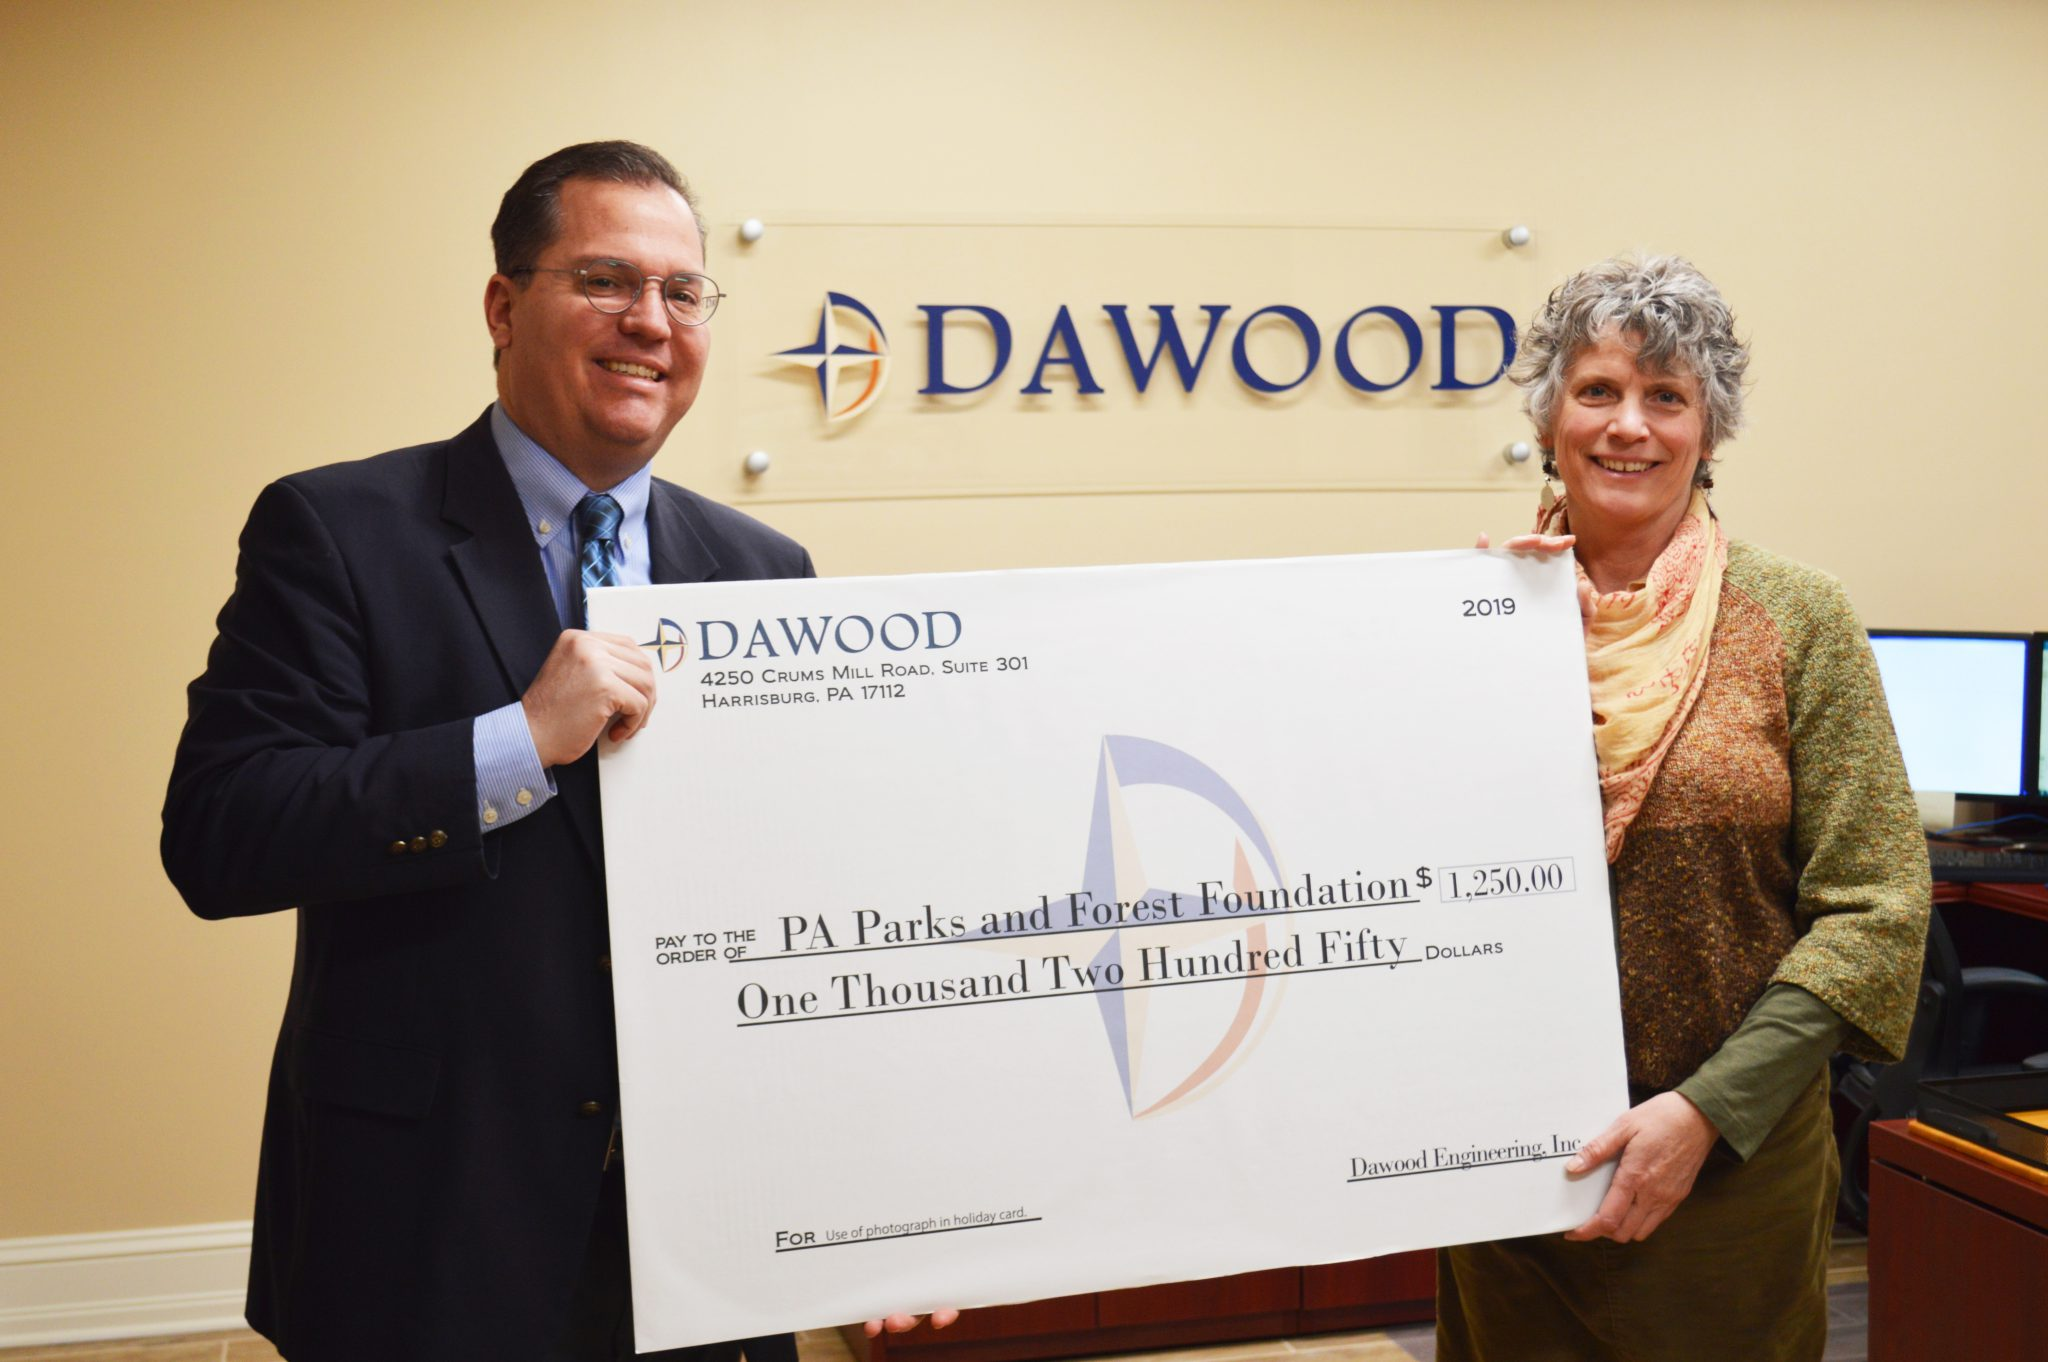 Dawood Donates to the PA Parks & Forests Foundation